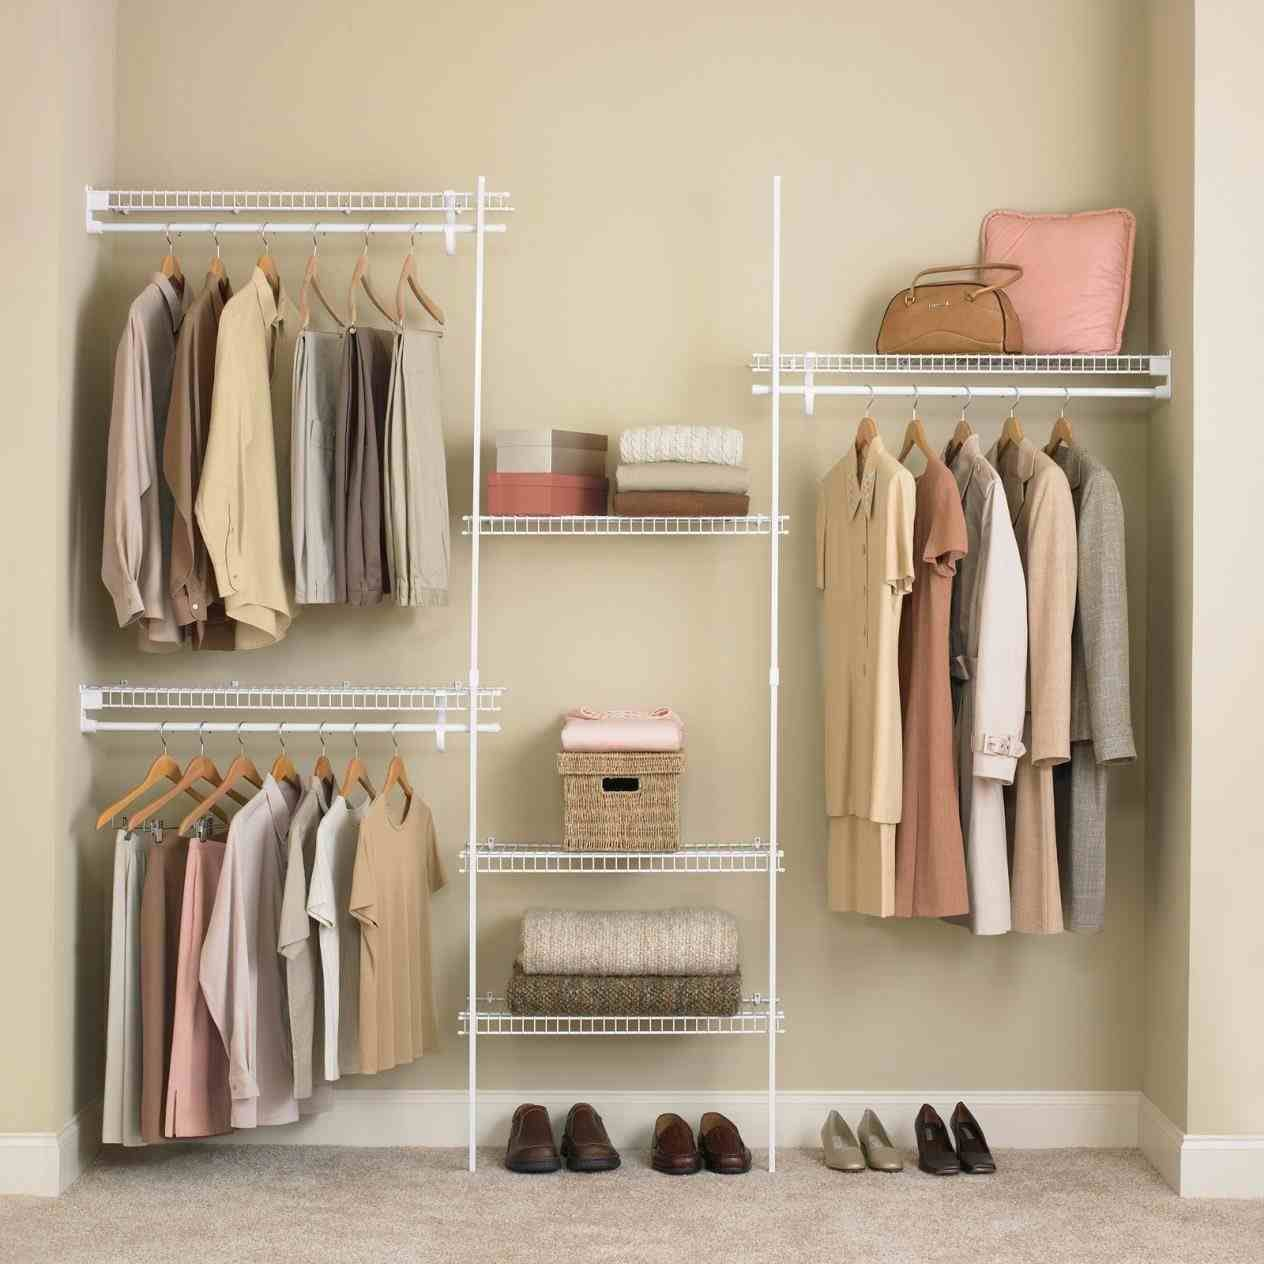 rubbermaid wire closet shelving. New Post Rubbermaid Wire Closet Shelving Visit Bobayule Trending Decors O